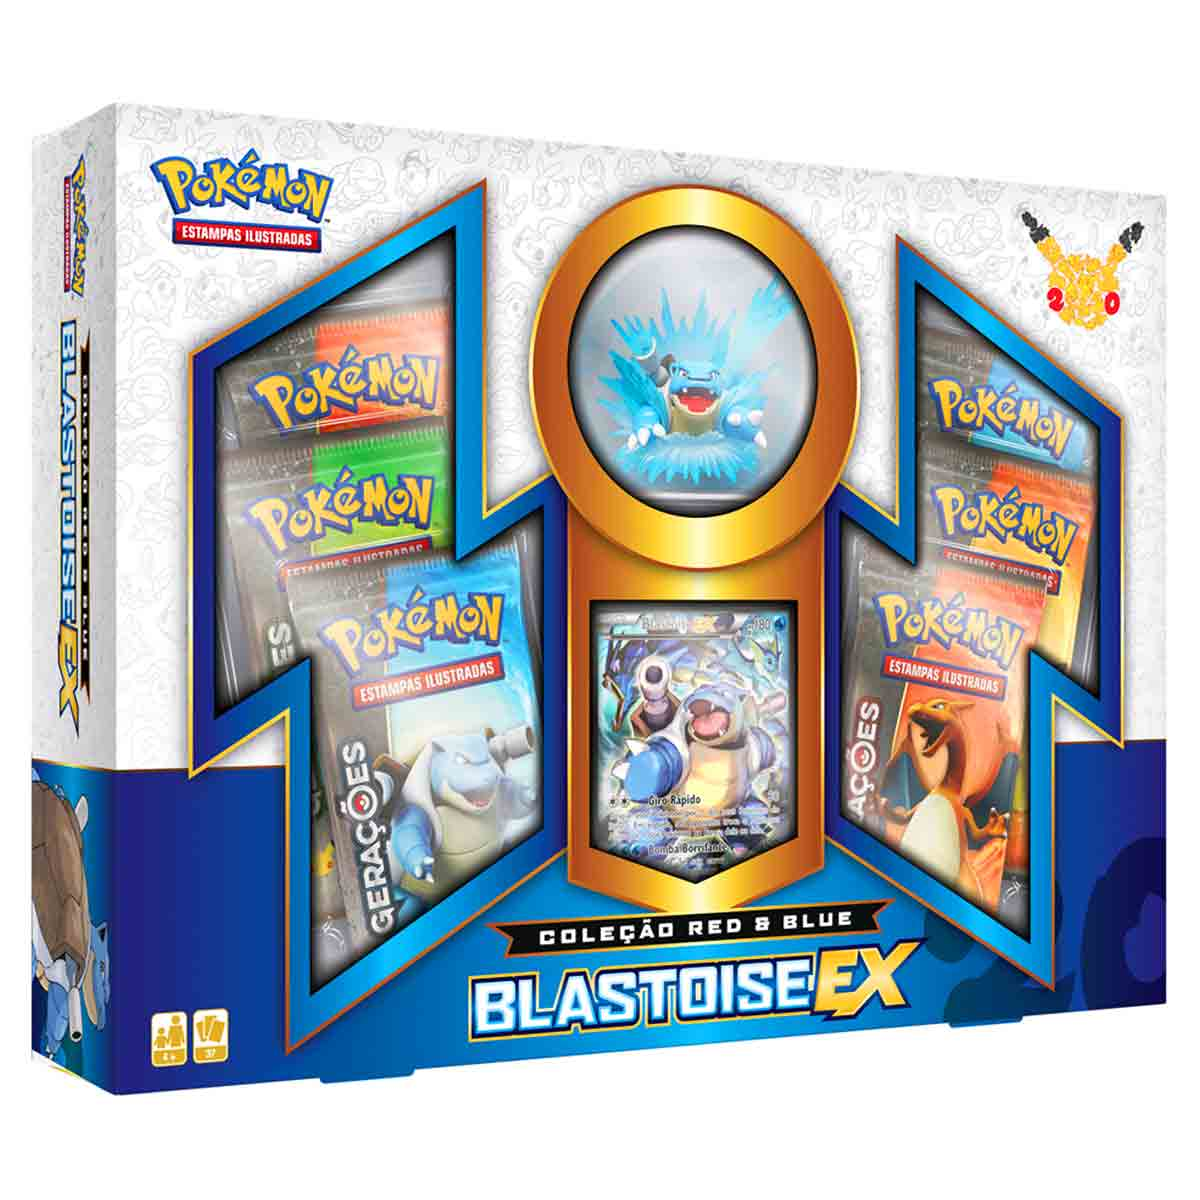 Shop customer account create admin cms_wysiwyg directive index/admin/Cms_Wysiwyg/directive - Pok Mon Box Blastoise Ex Cole O Red Blue